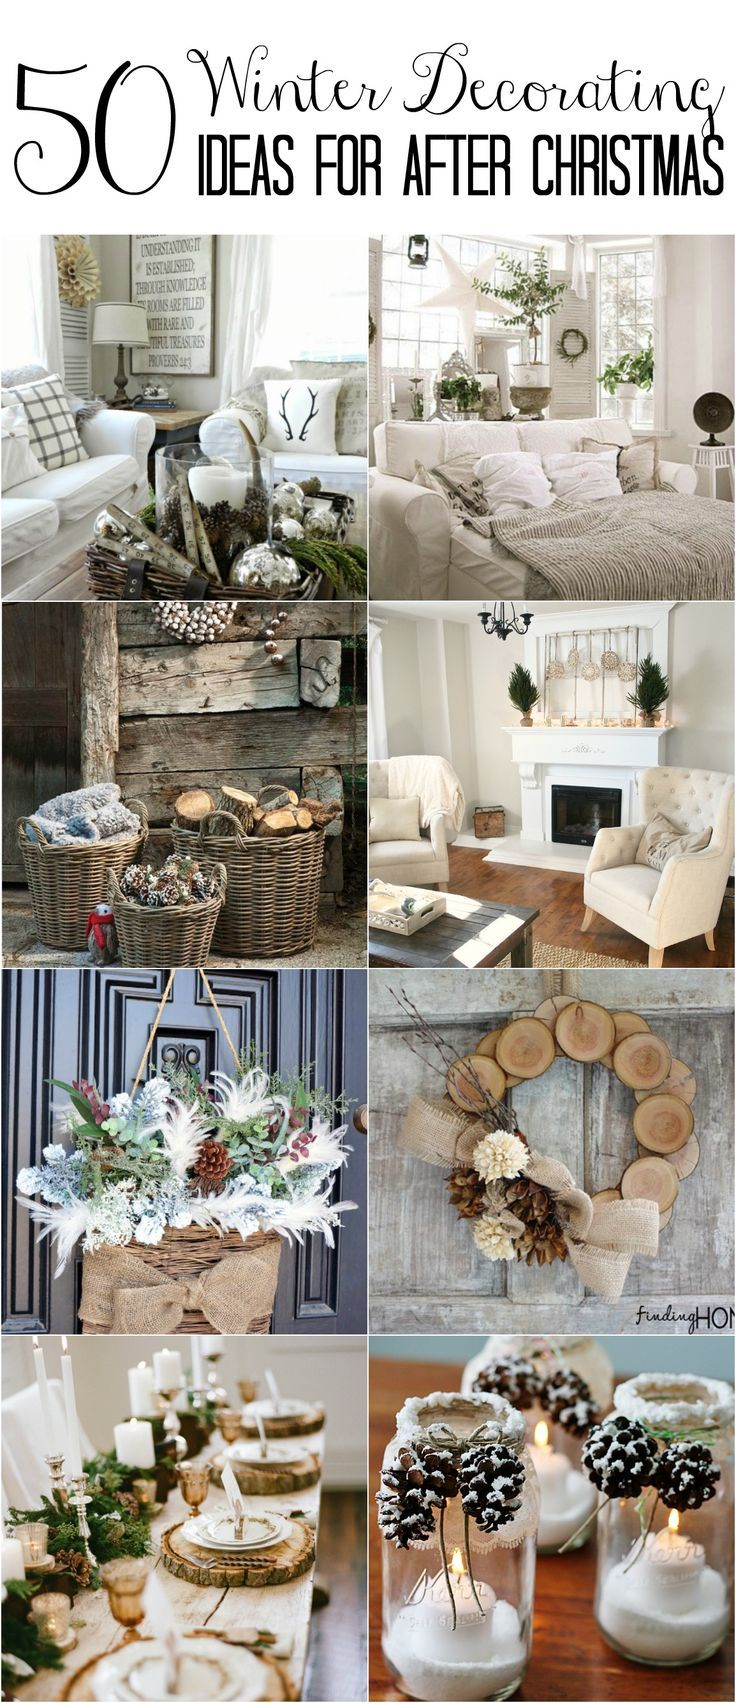 In Home Decorations 50 Winter Decorating Ideas Jolly Holiday Winter Home Decor